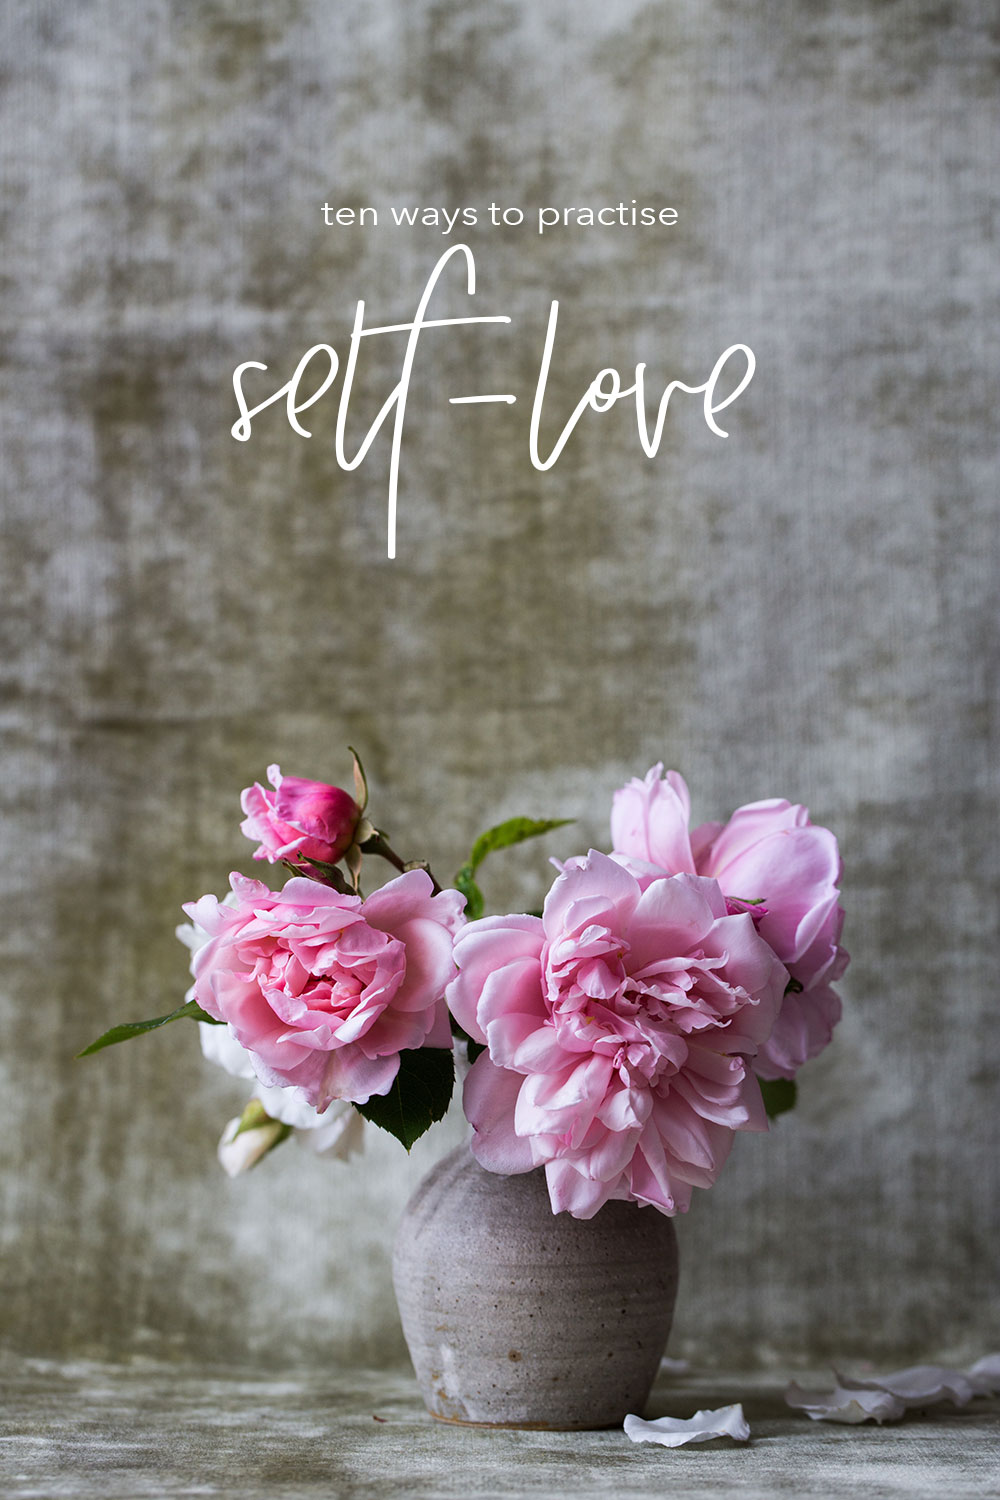 10 simple self-love ideas, that you can practice today and everyday   The Good Living Blog #betterliving #selflove